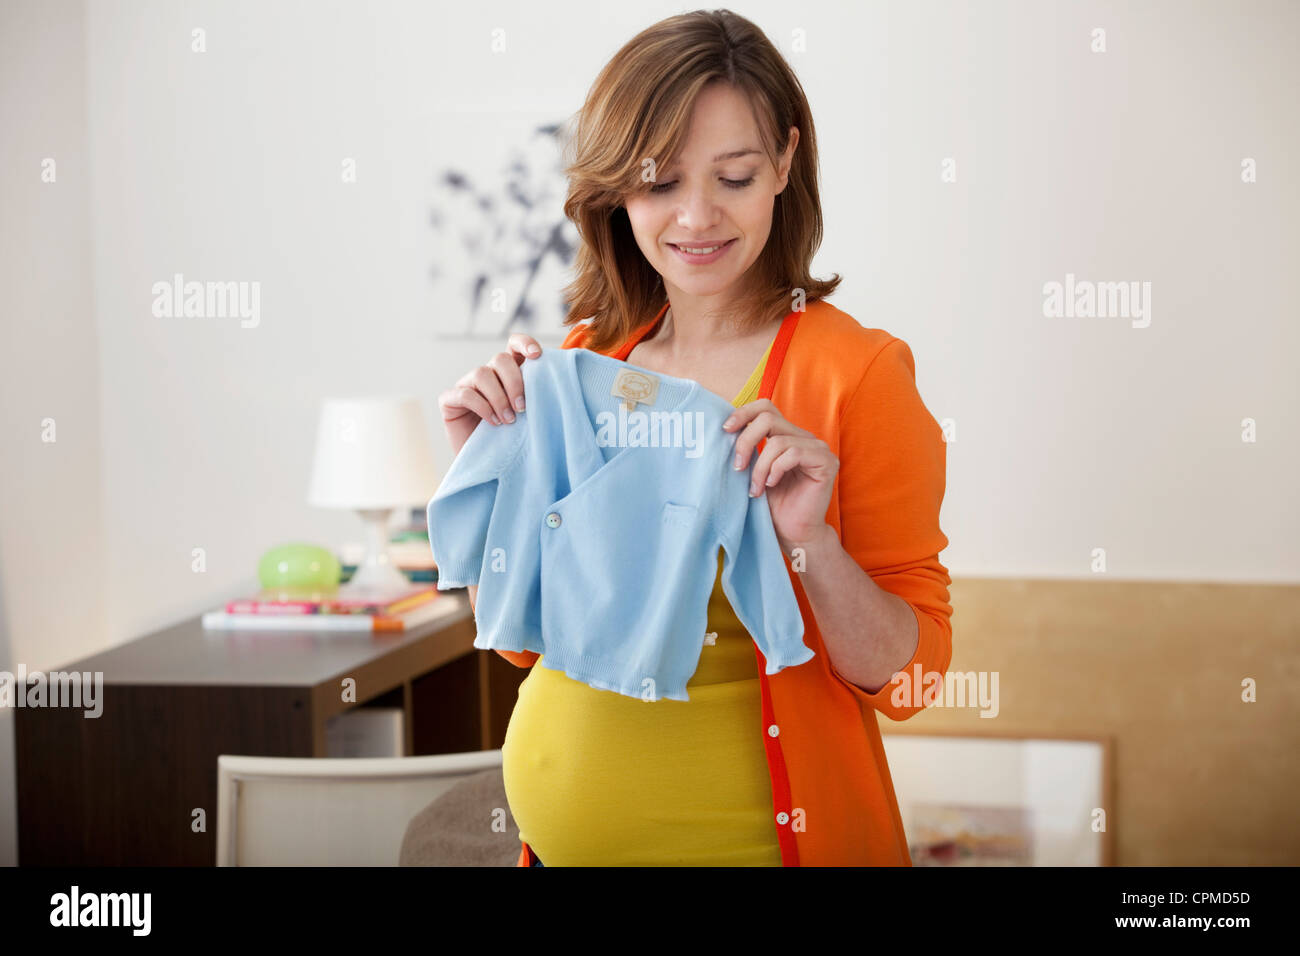 PREGNANT WOMAN INDOORS - Stock Image